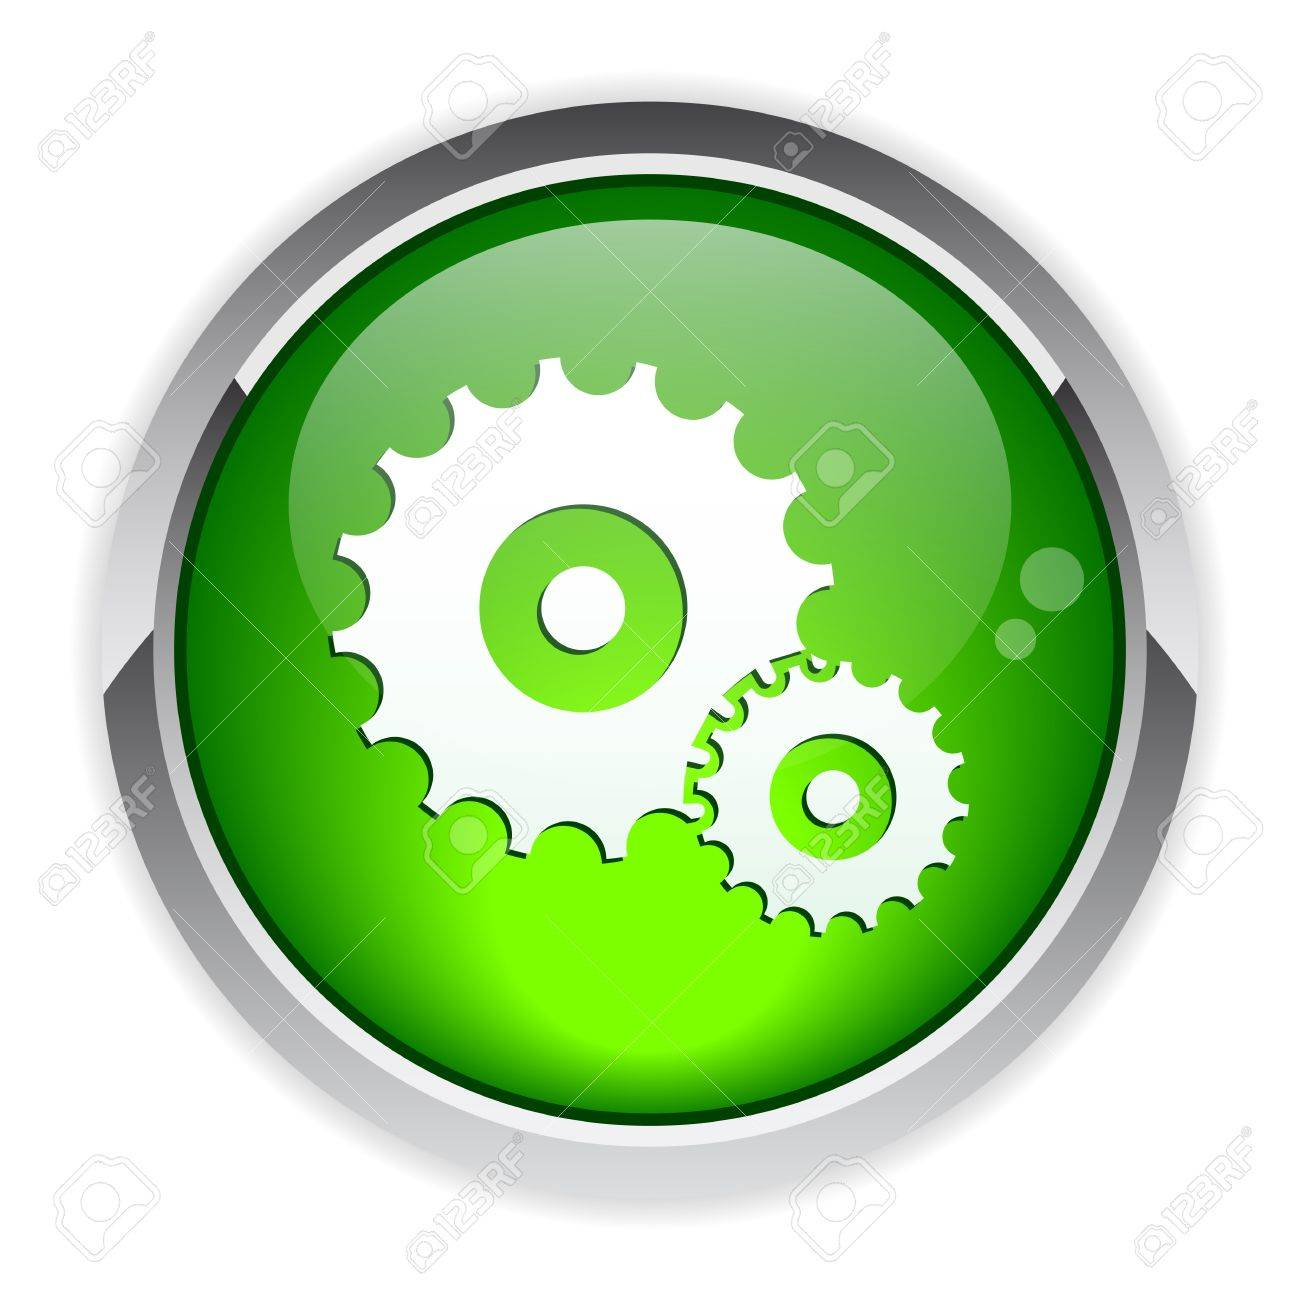 button settings Information Stock Vector - 20042149